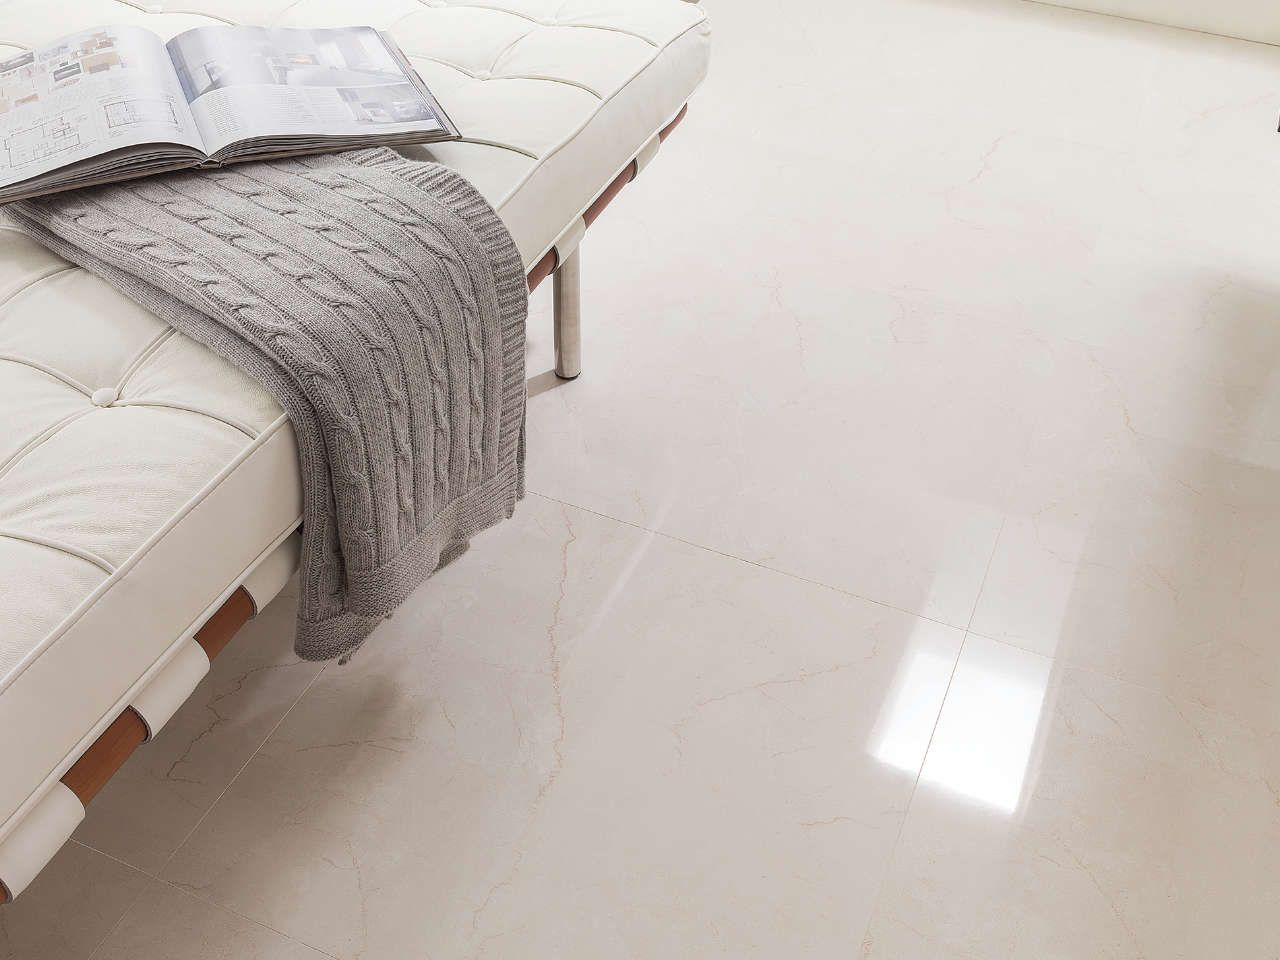 Ceramic floor tiles porcelanosa is a leading manufacturer of ceramic floor tiles porcelanosa is a leading manufacturer of ceramic floor tiles renowned for dailygadgetfo Image collections